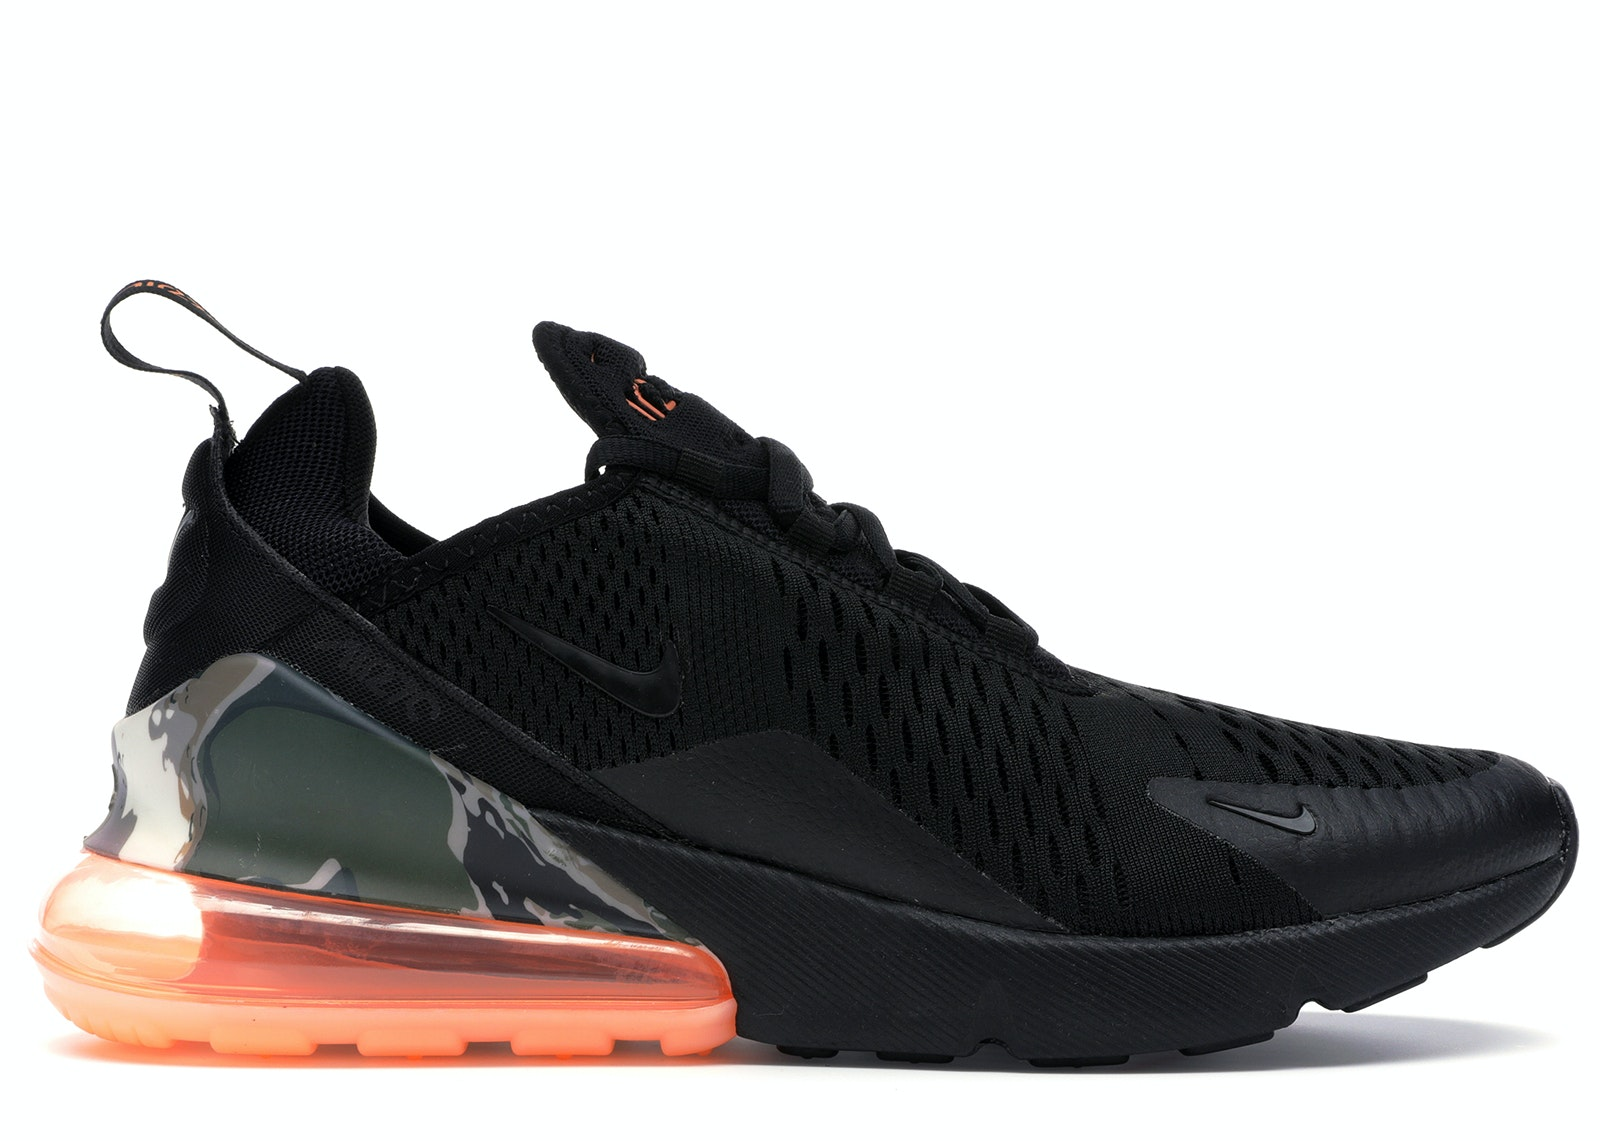 Air Max 270 Camo Sunset